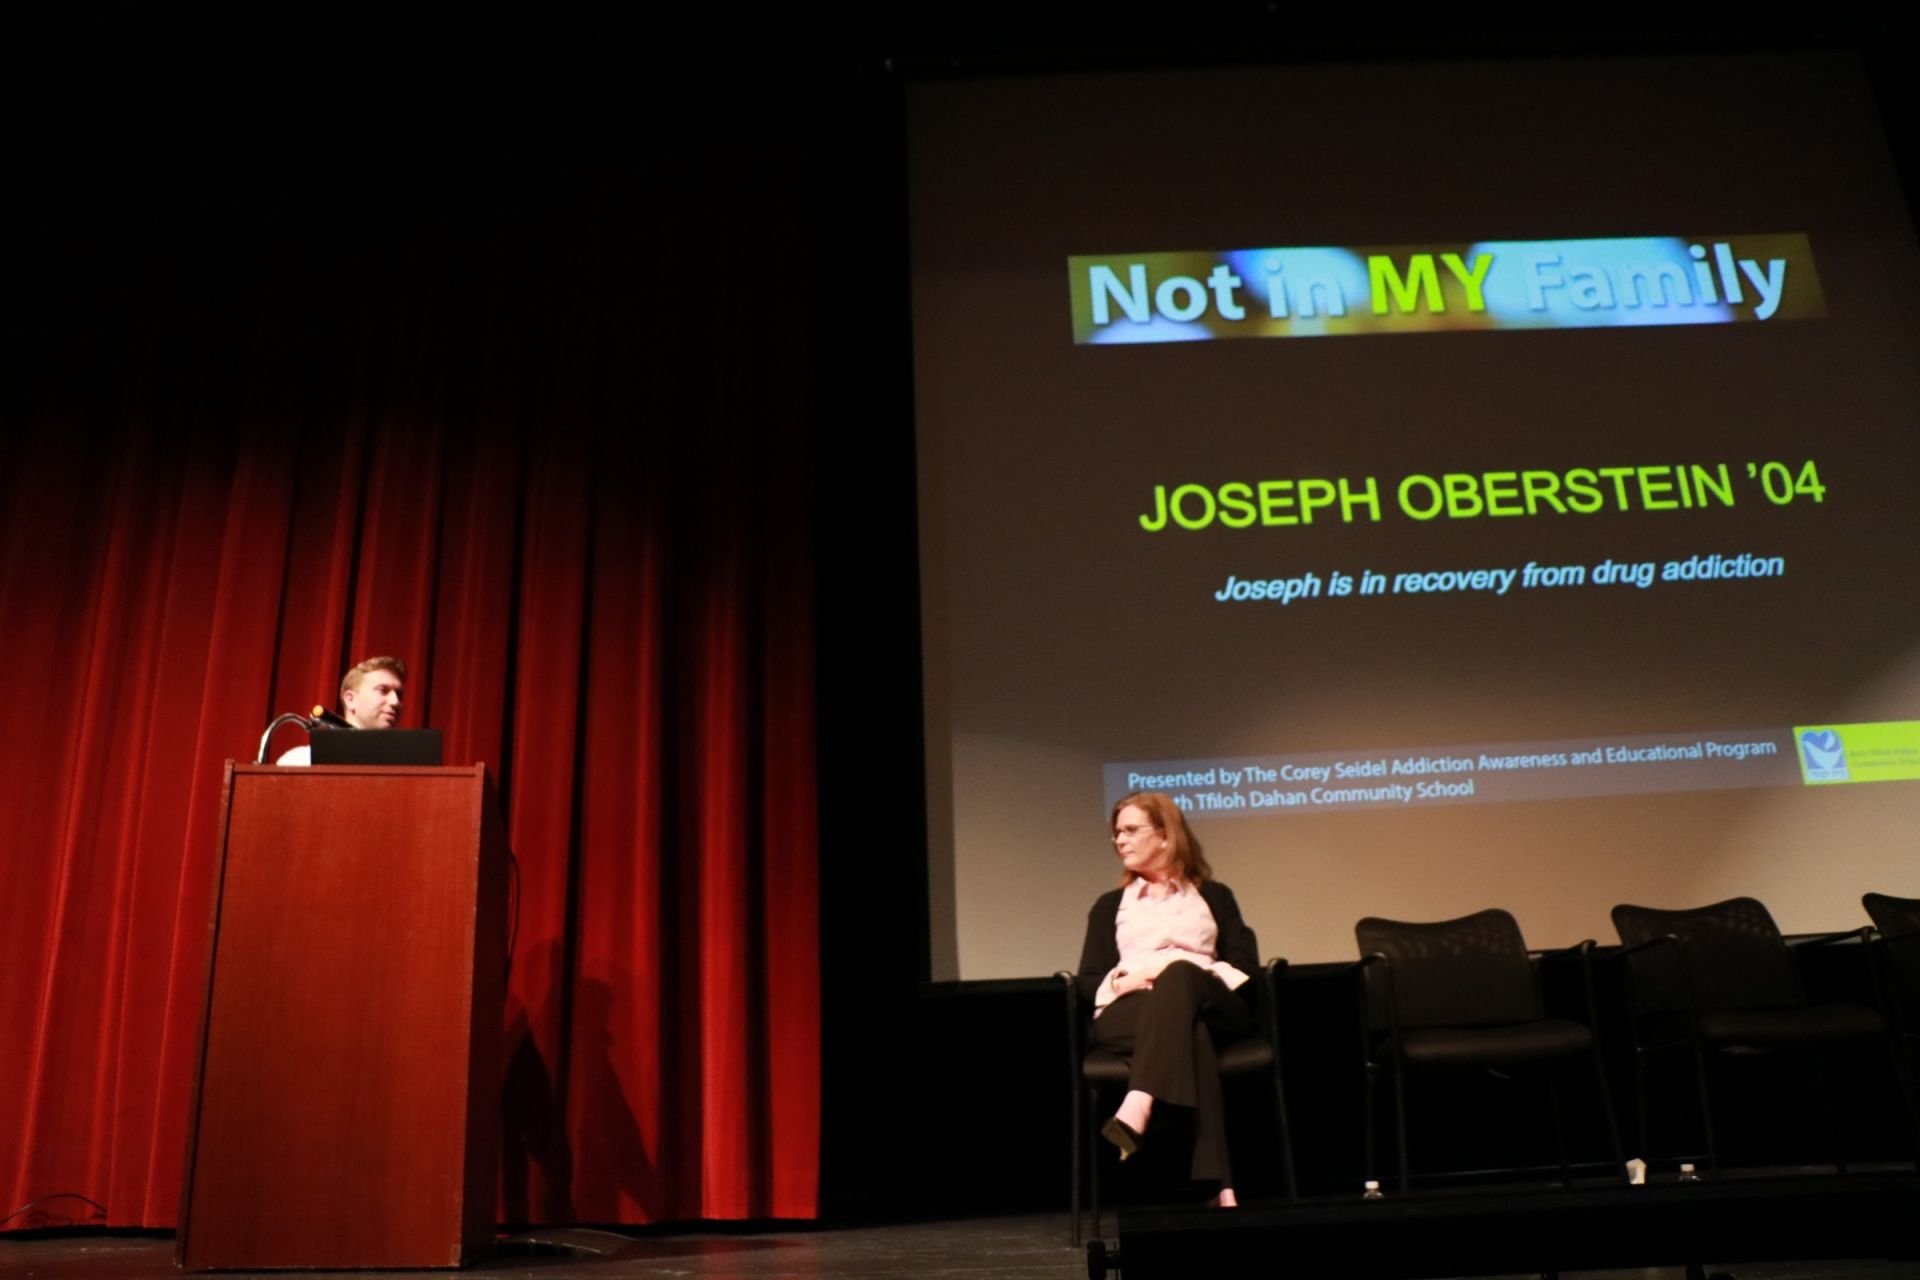 Joseph Oberstein, a former Talmudical Academy student and a Beth Tfiloh alumnus, described his journey to addiction recovery